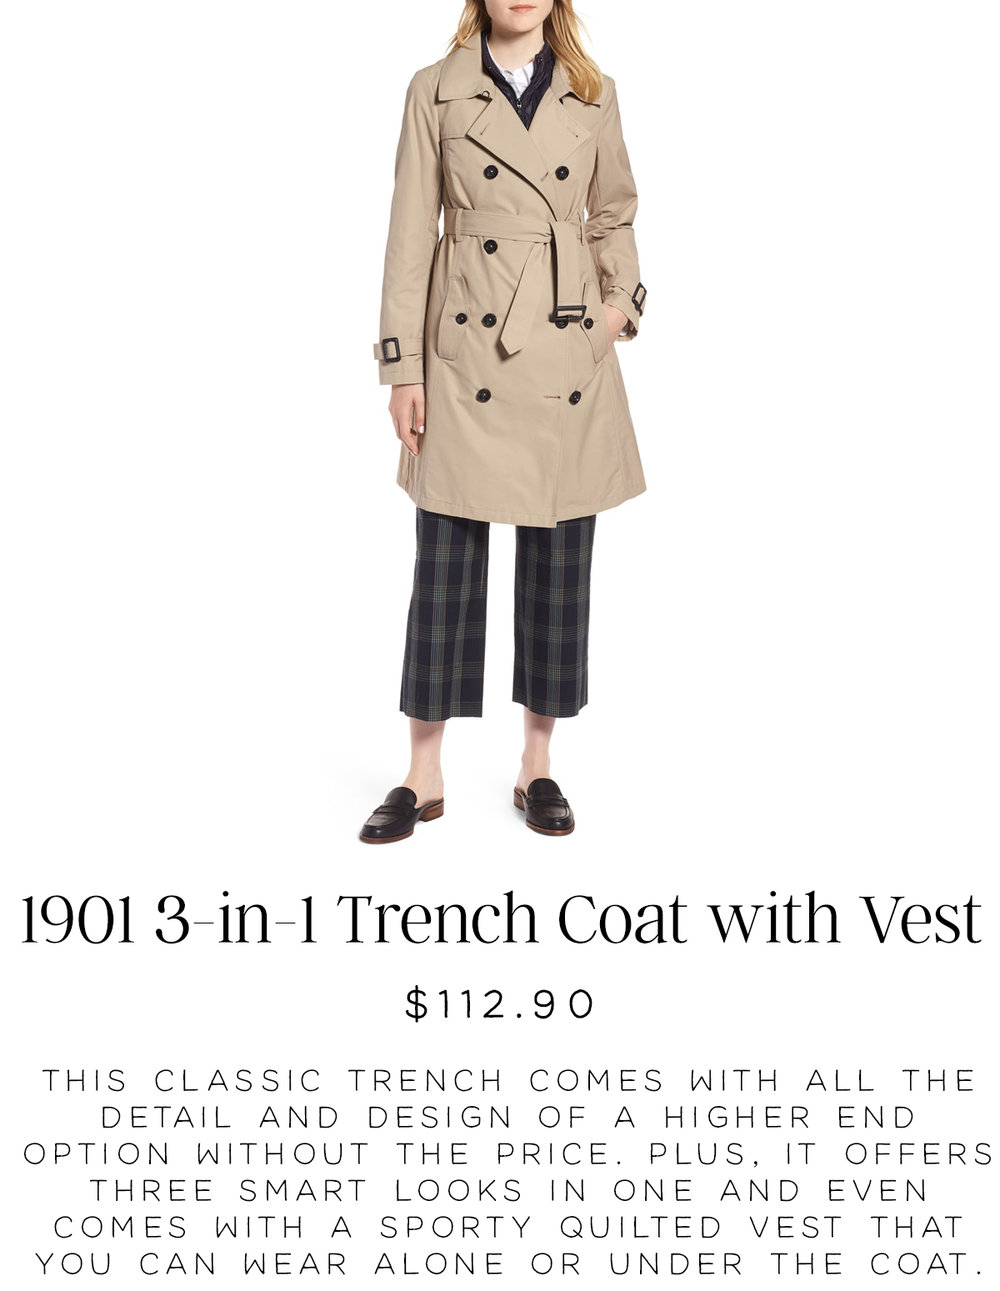 nordstrom-anniversary-sale-trench-coat.jpg